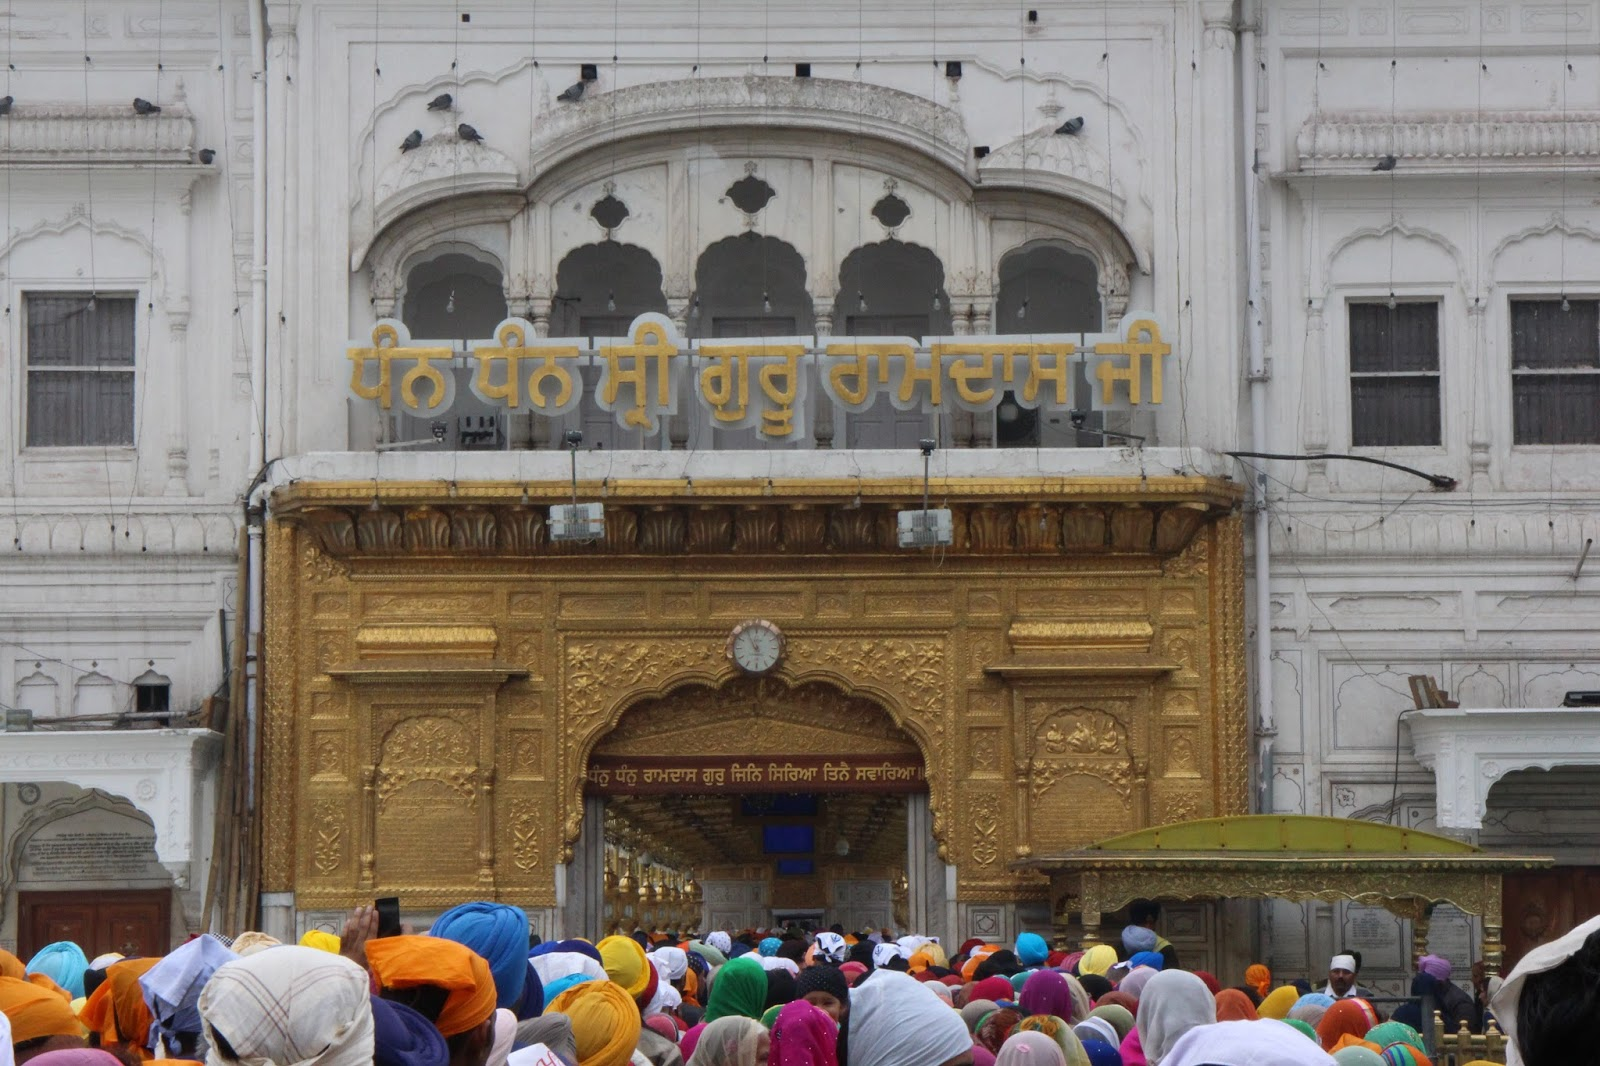 my world golden temple amritsar the entry to the temple through the bridge